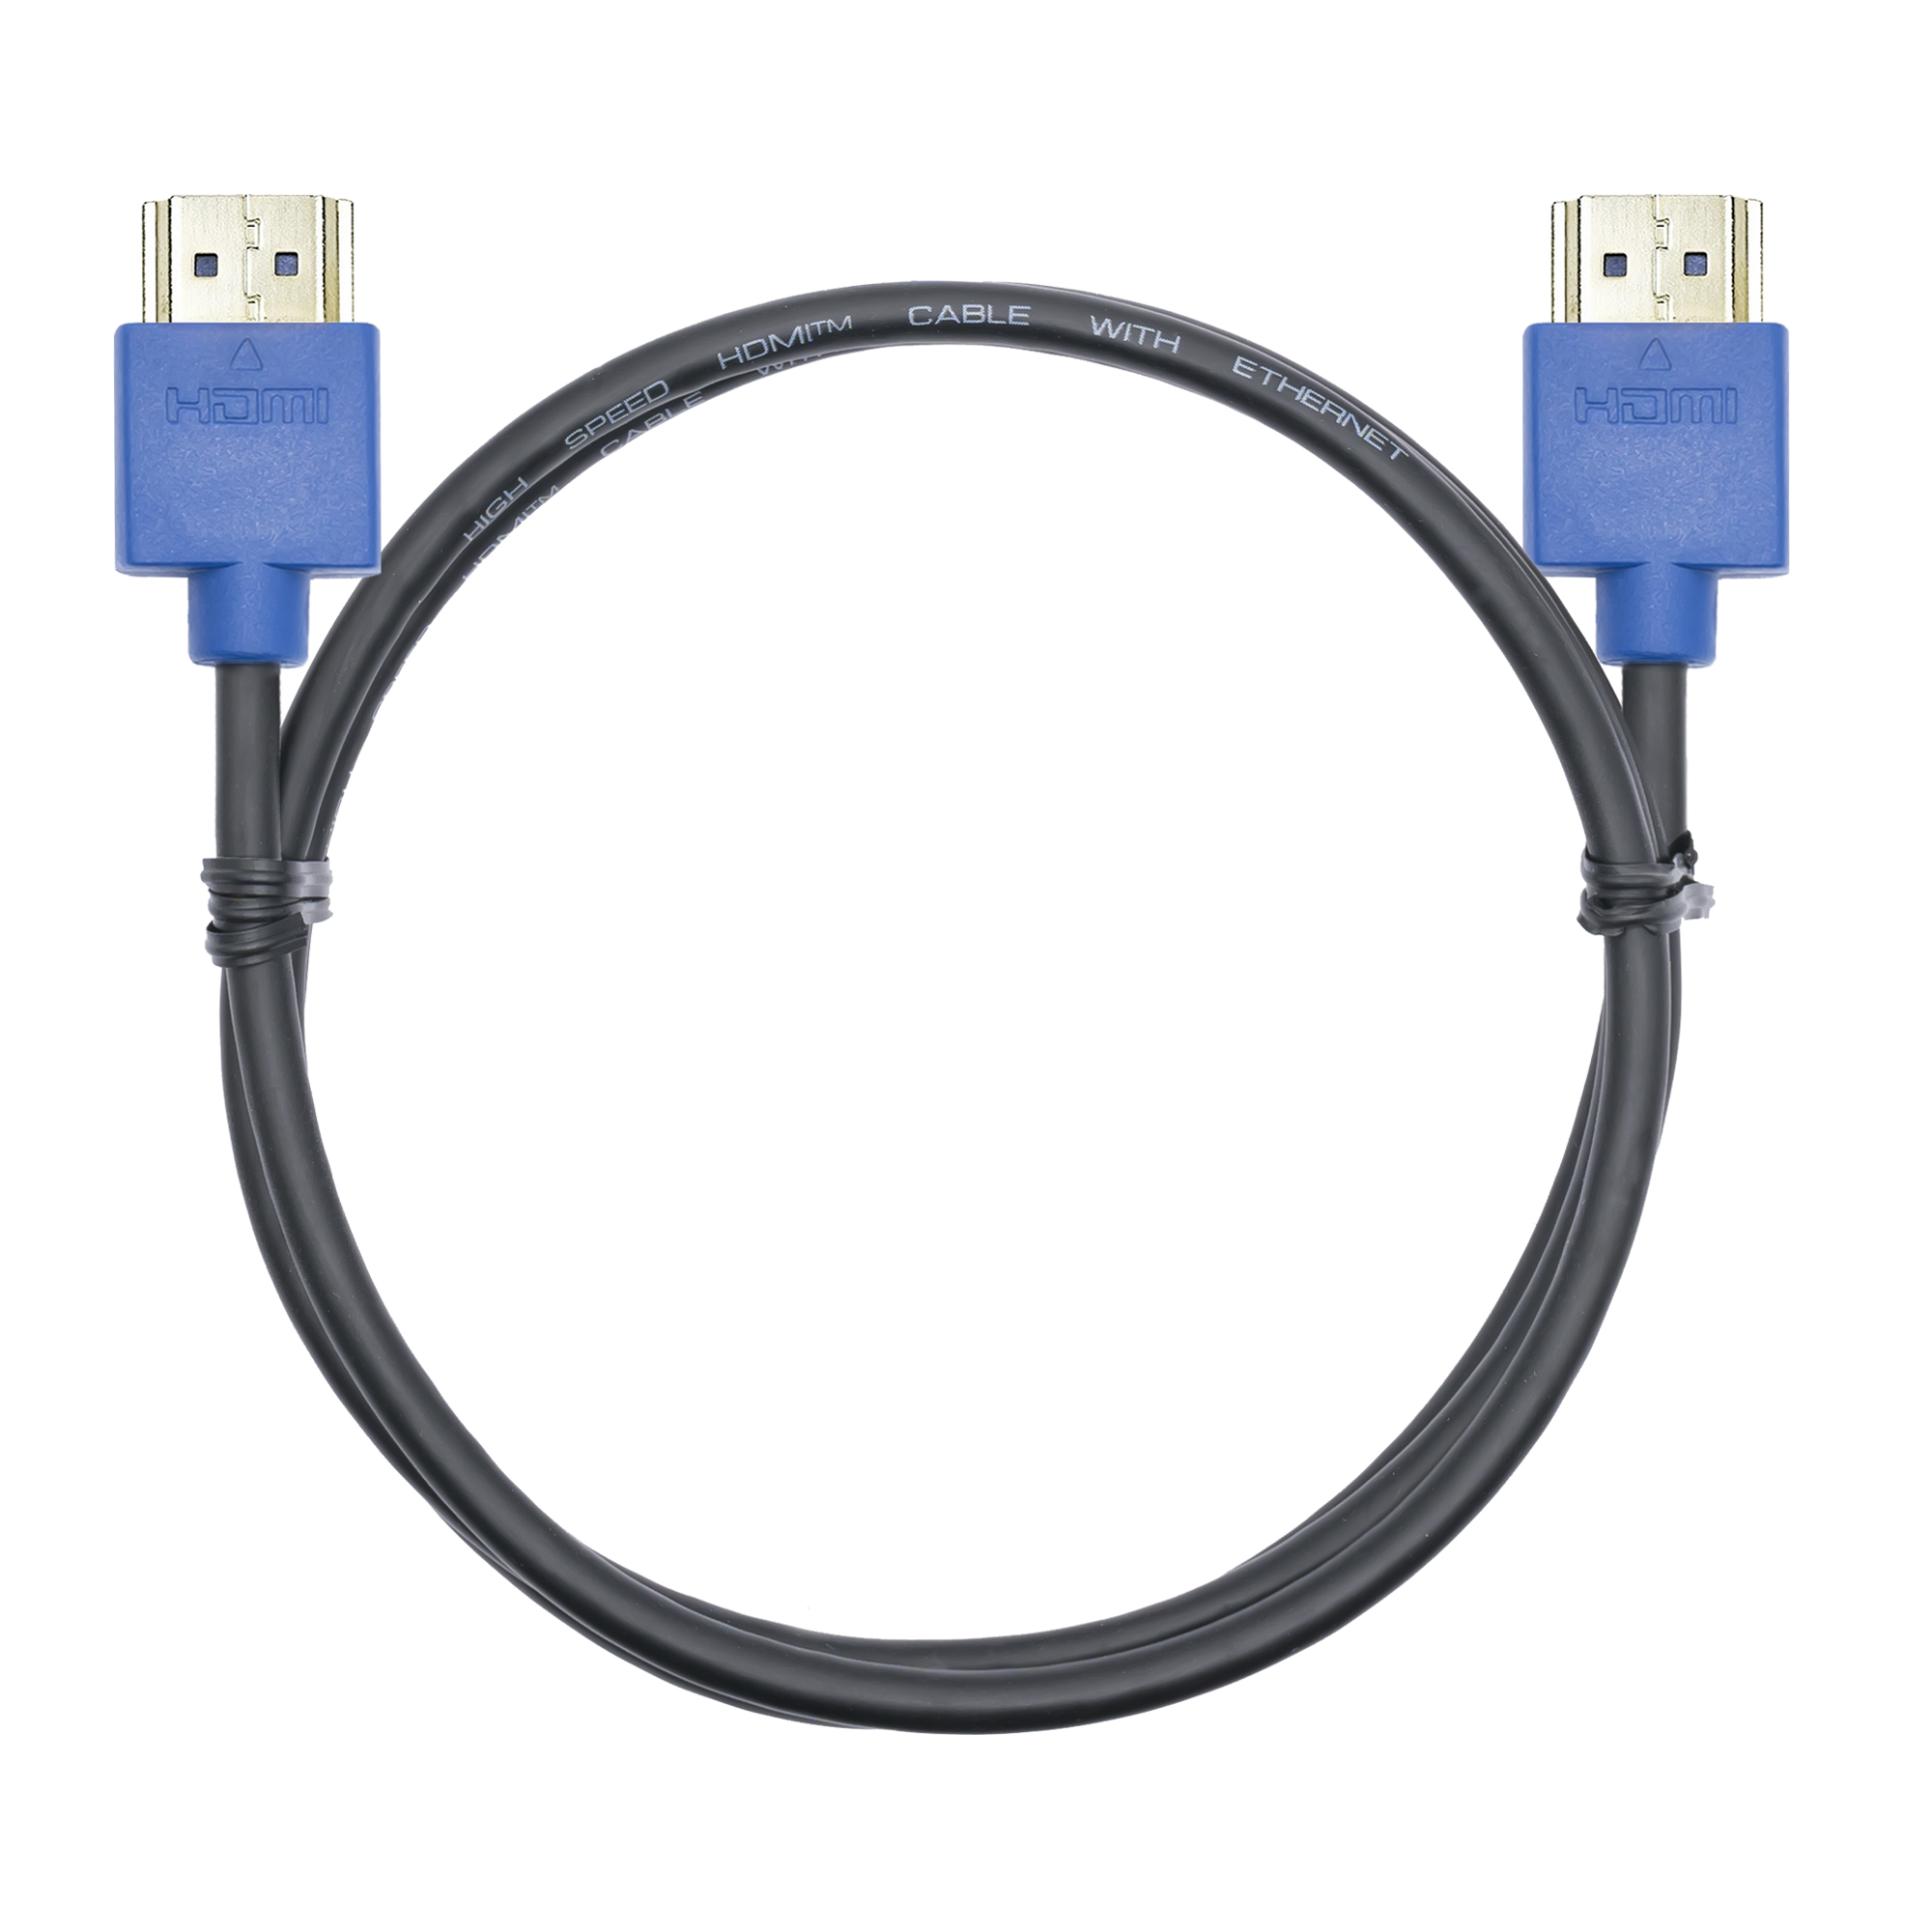 Khadas HDMI Cable, 1.2 Meter Long